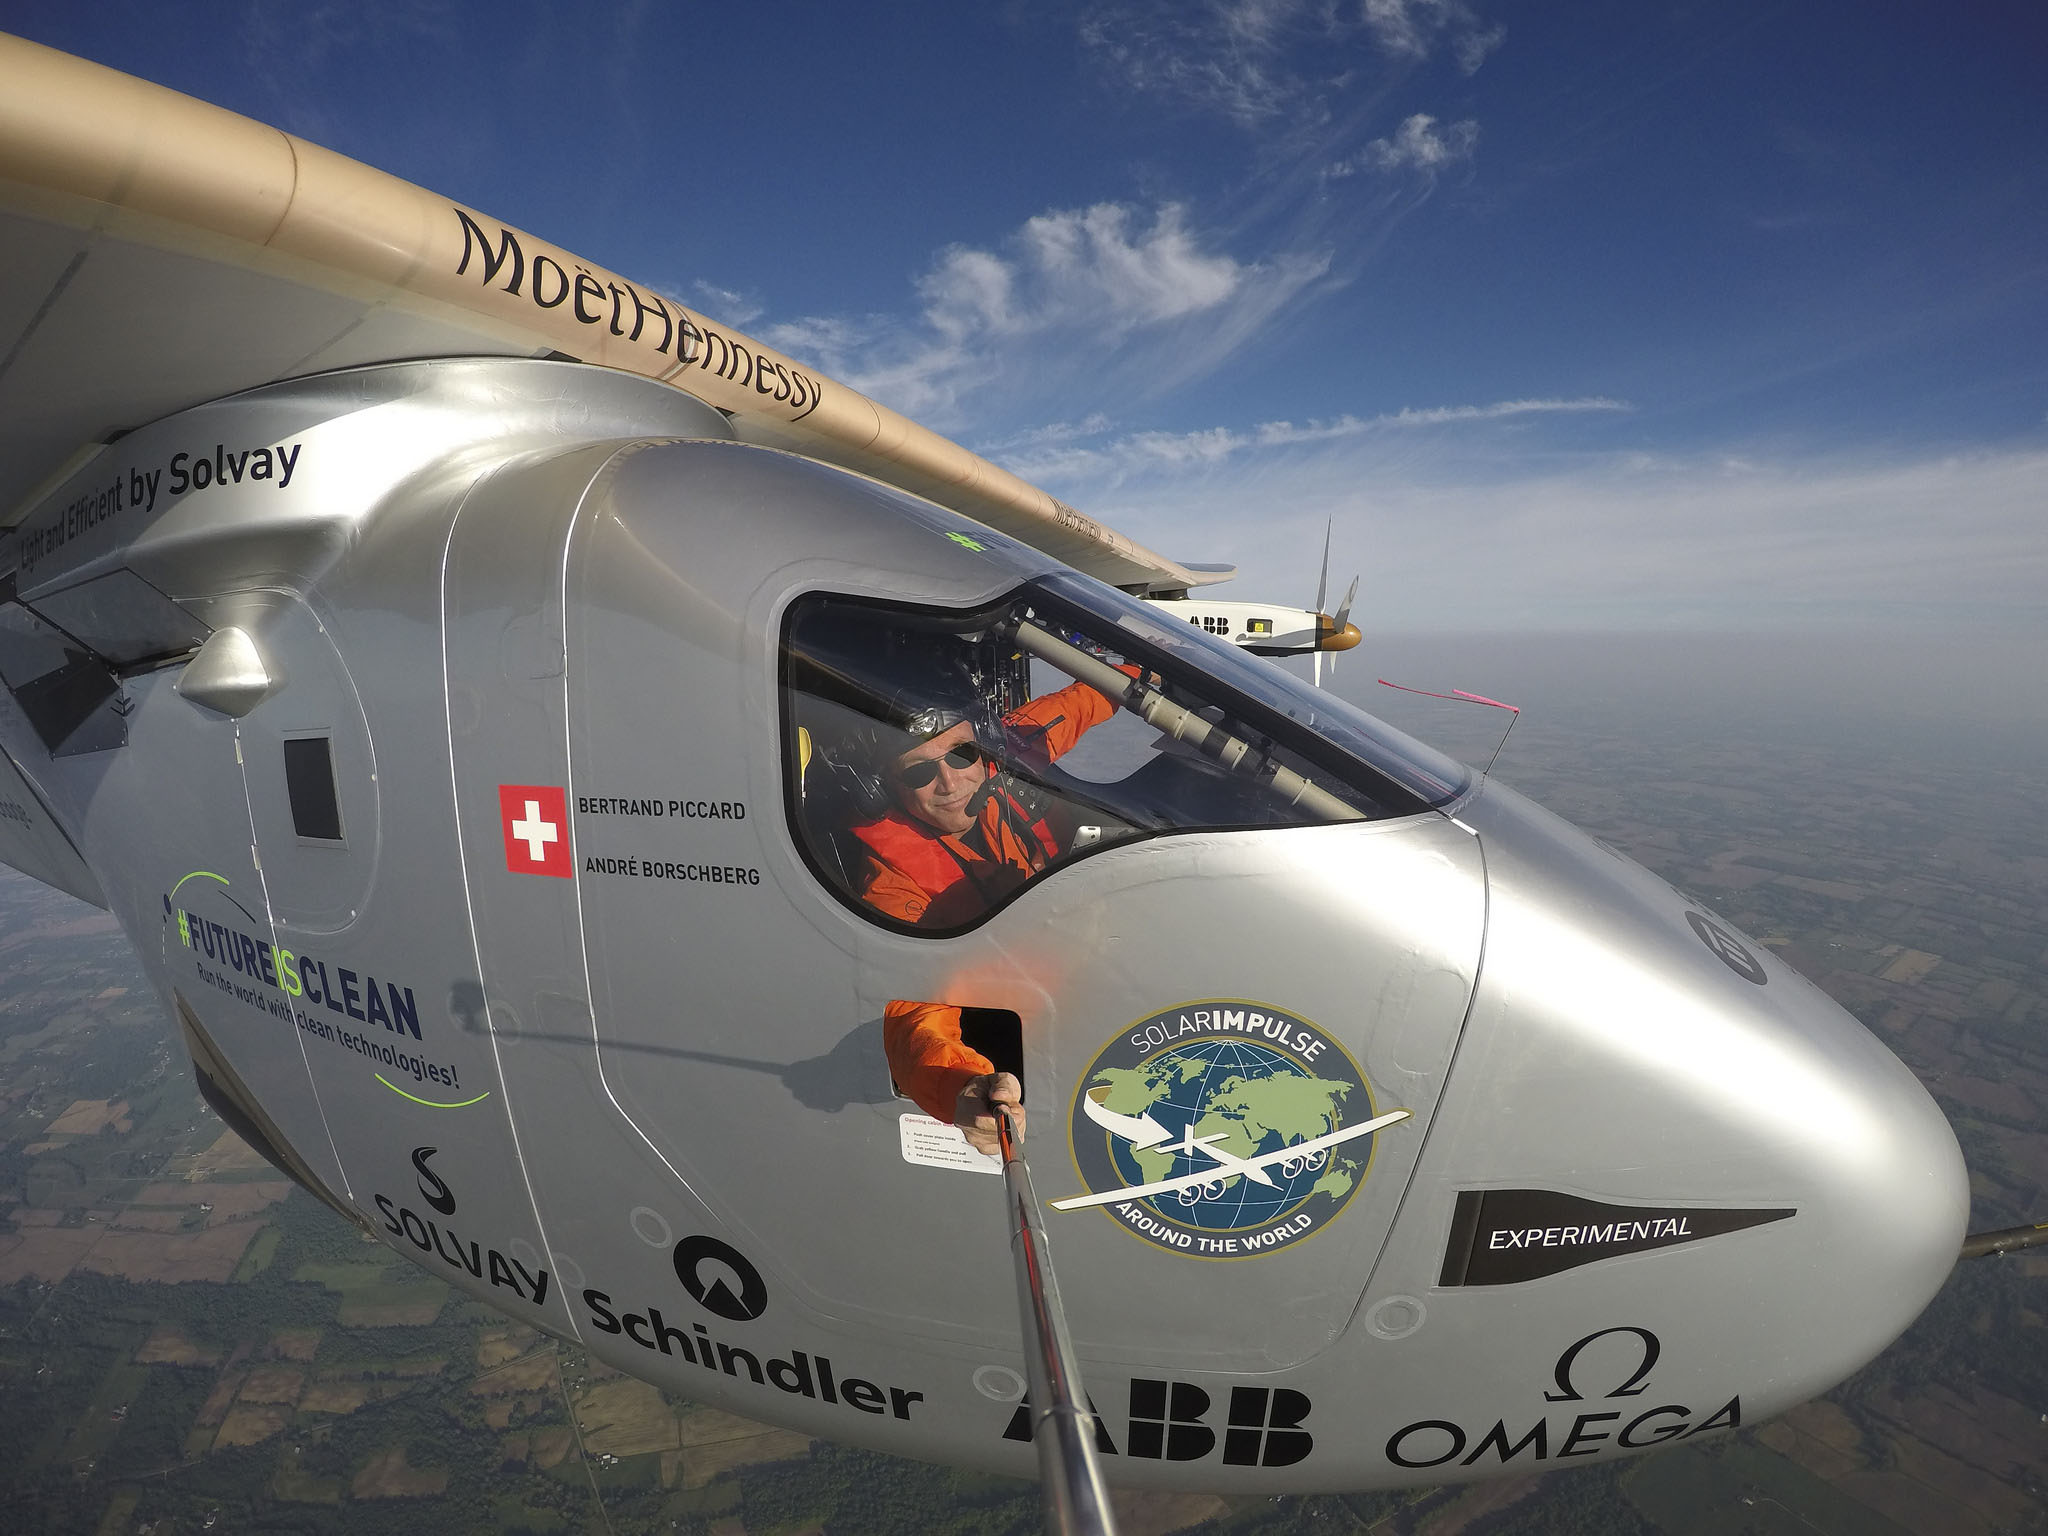 Bertrand Piccard takes a selfie during his flight from Dayton, Ohio to Allentown, Pennsylvania May 25. Photo courtesy of Solar Impulse.